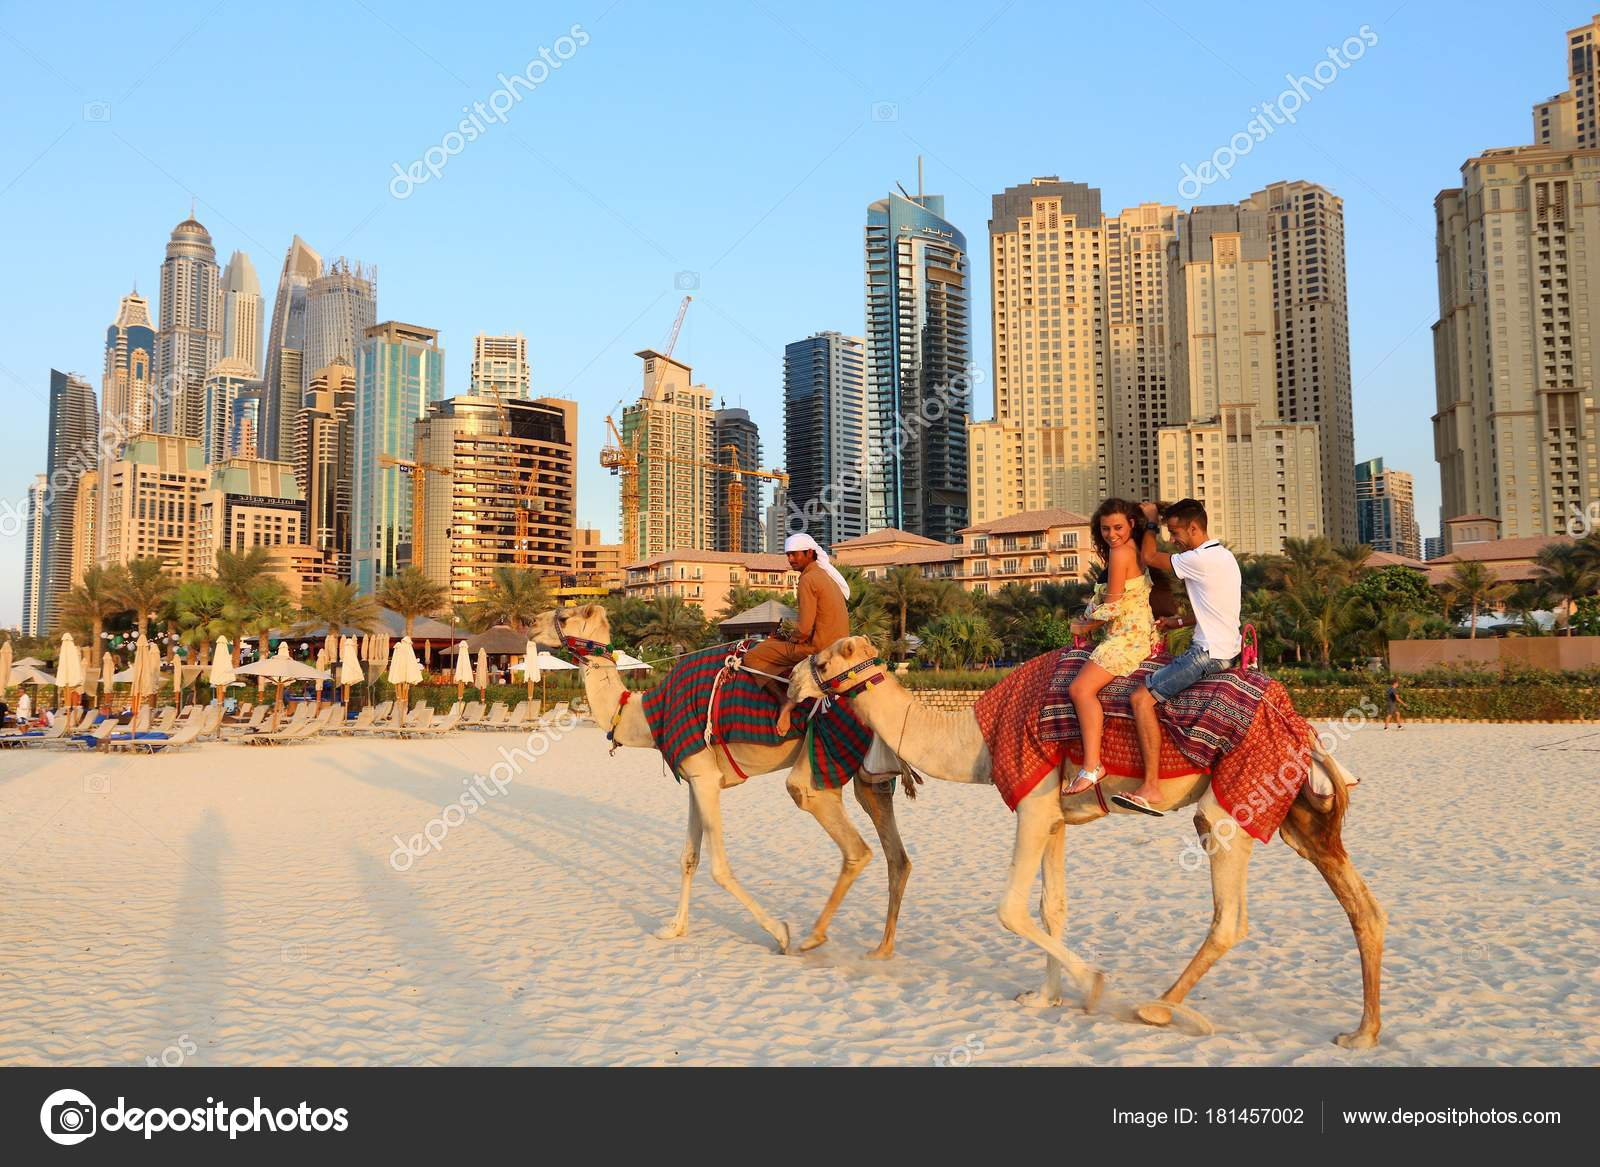 Dubai camel ride stock editorial photo tupungato 181457002 dubai camel ride stock photo altavistaventures Choice Image